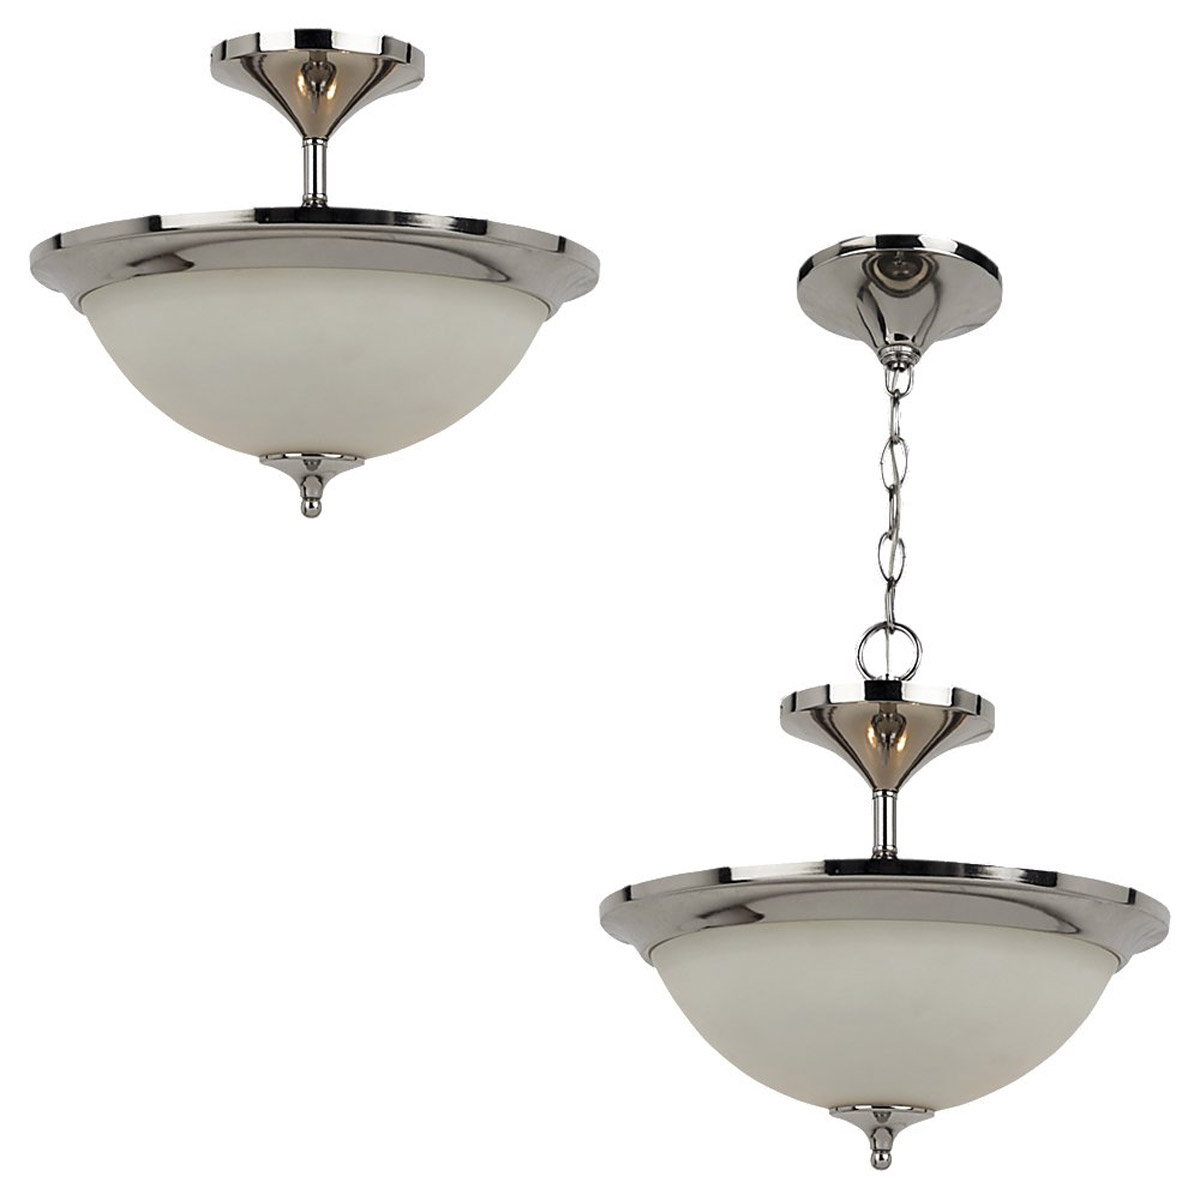 Sea Gull Lighting Solana 2 Light Semi-Flush Mount in Polished Nickel 77971-841